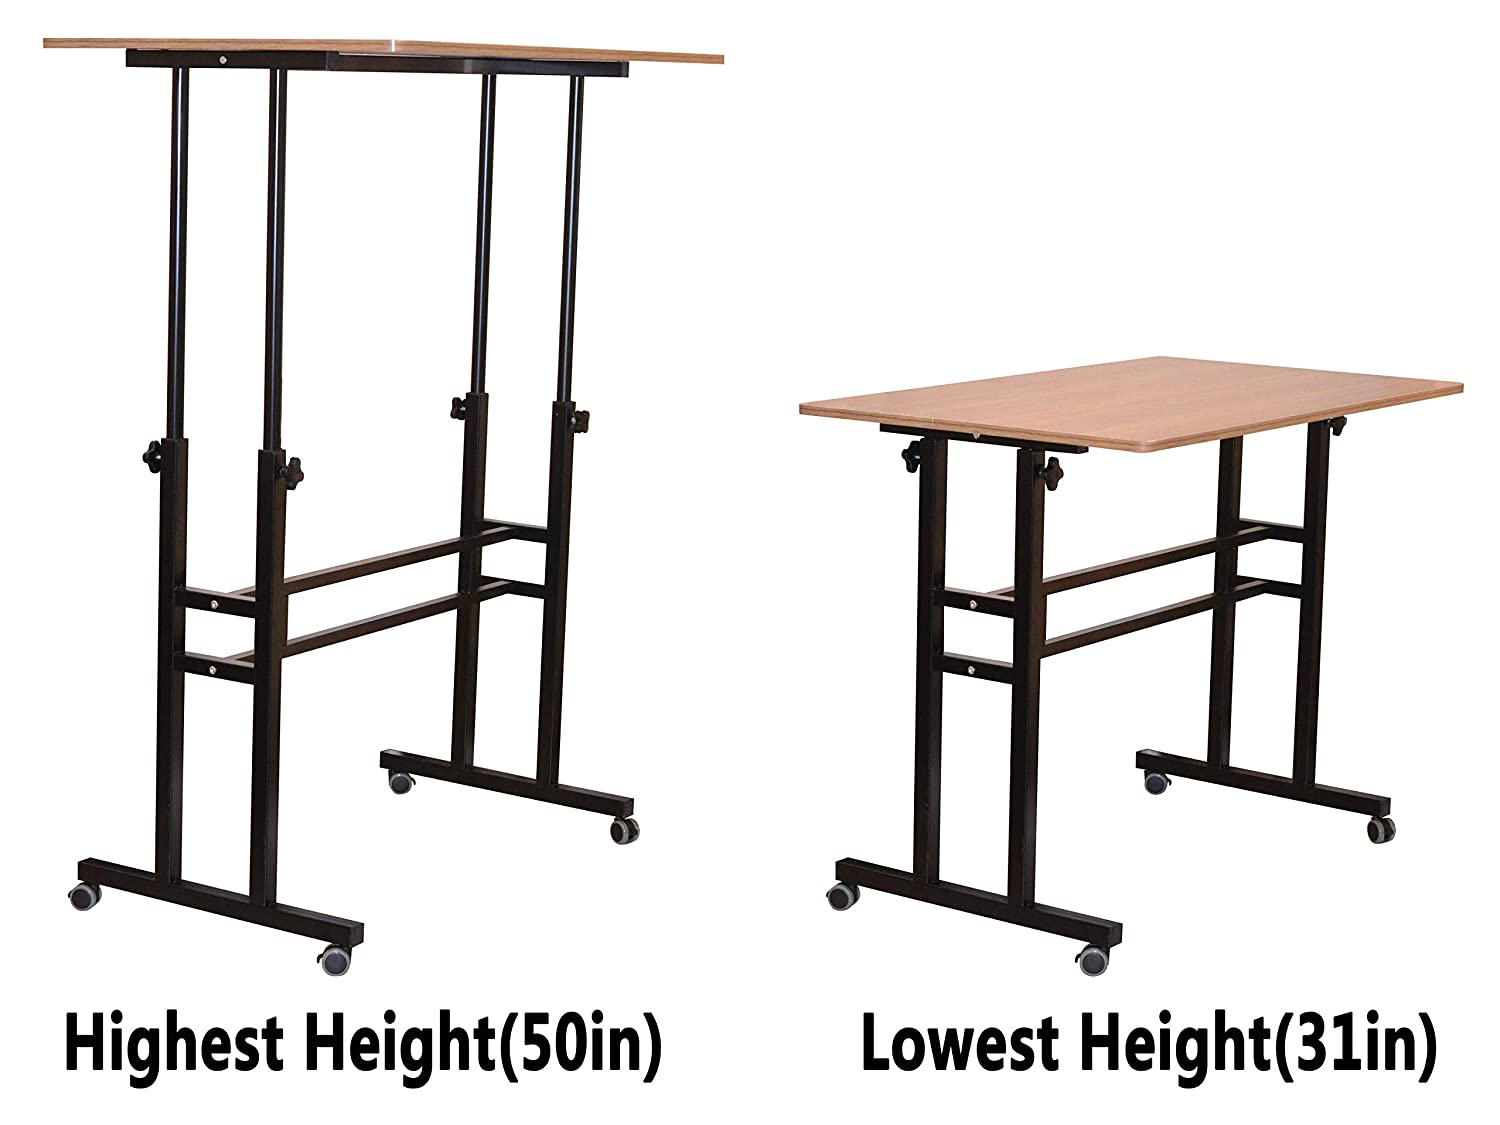 Akway Small Computer Desk Standing Desk with Wheels 31.4 x 19.6 inches Height Adjustable Desk Sit Stand Desk Rolling Cart Compact Computer Desk Black